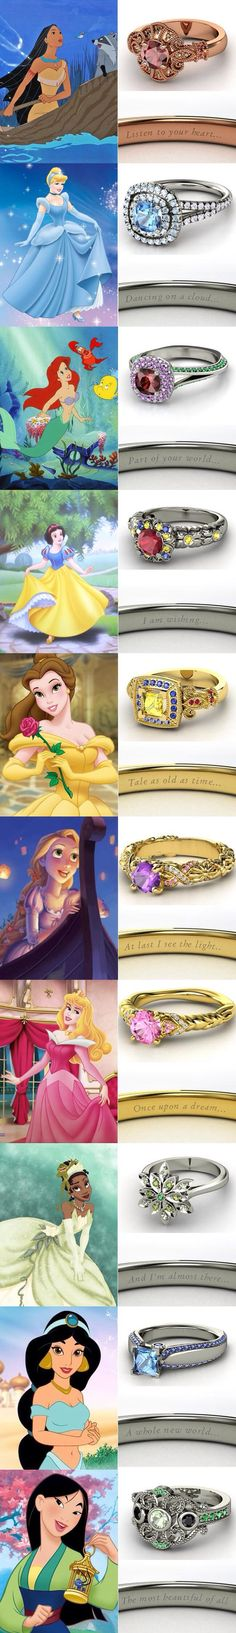 Diehard Disney Princess Fandom Into Your Wedding Disney princess wedding rings and more ideas for diehard fans!Disney princess wedding rings and more ideas for diehard fans! Walt Disney, Disney Love, Disney Magic, Disney Art, Disney Stuff, Disney And Dreamworks, Disney Pixar, Funny Disney, Disney Tangled